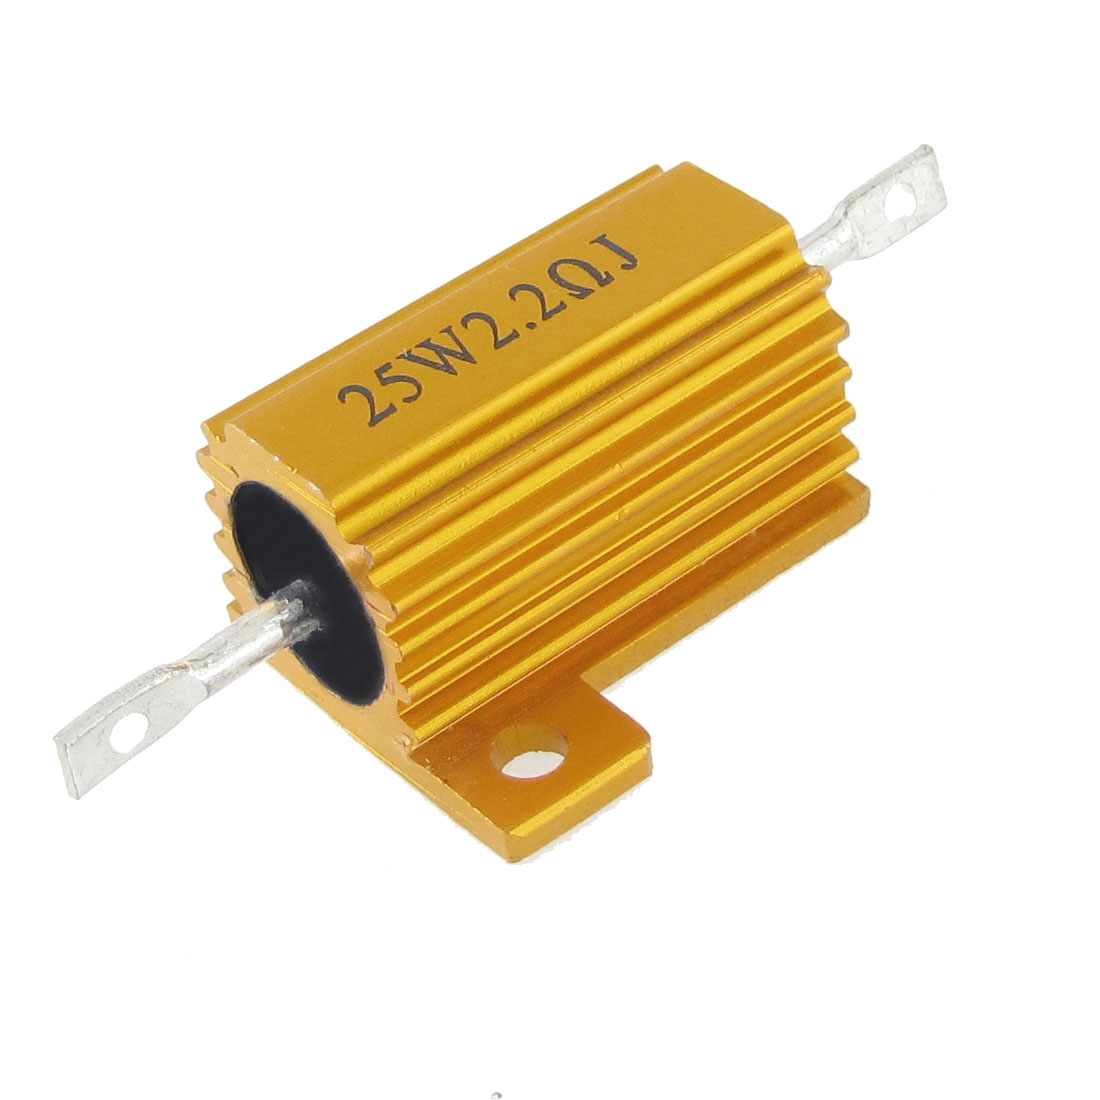 Gold Tone 5% 25W 2.2 Ohm Screw Tap Mounted Aluminum Shell Wirewound Resistor